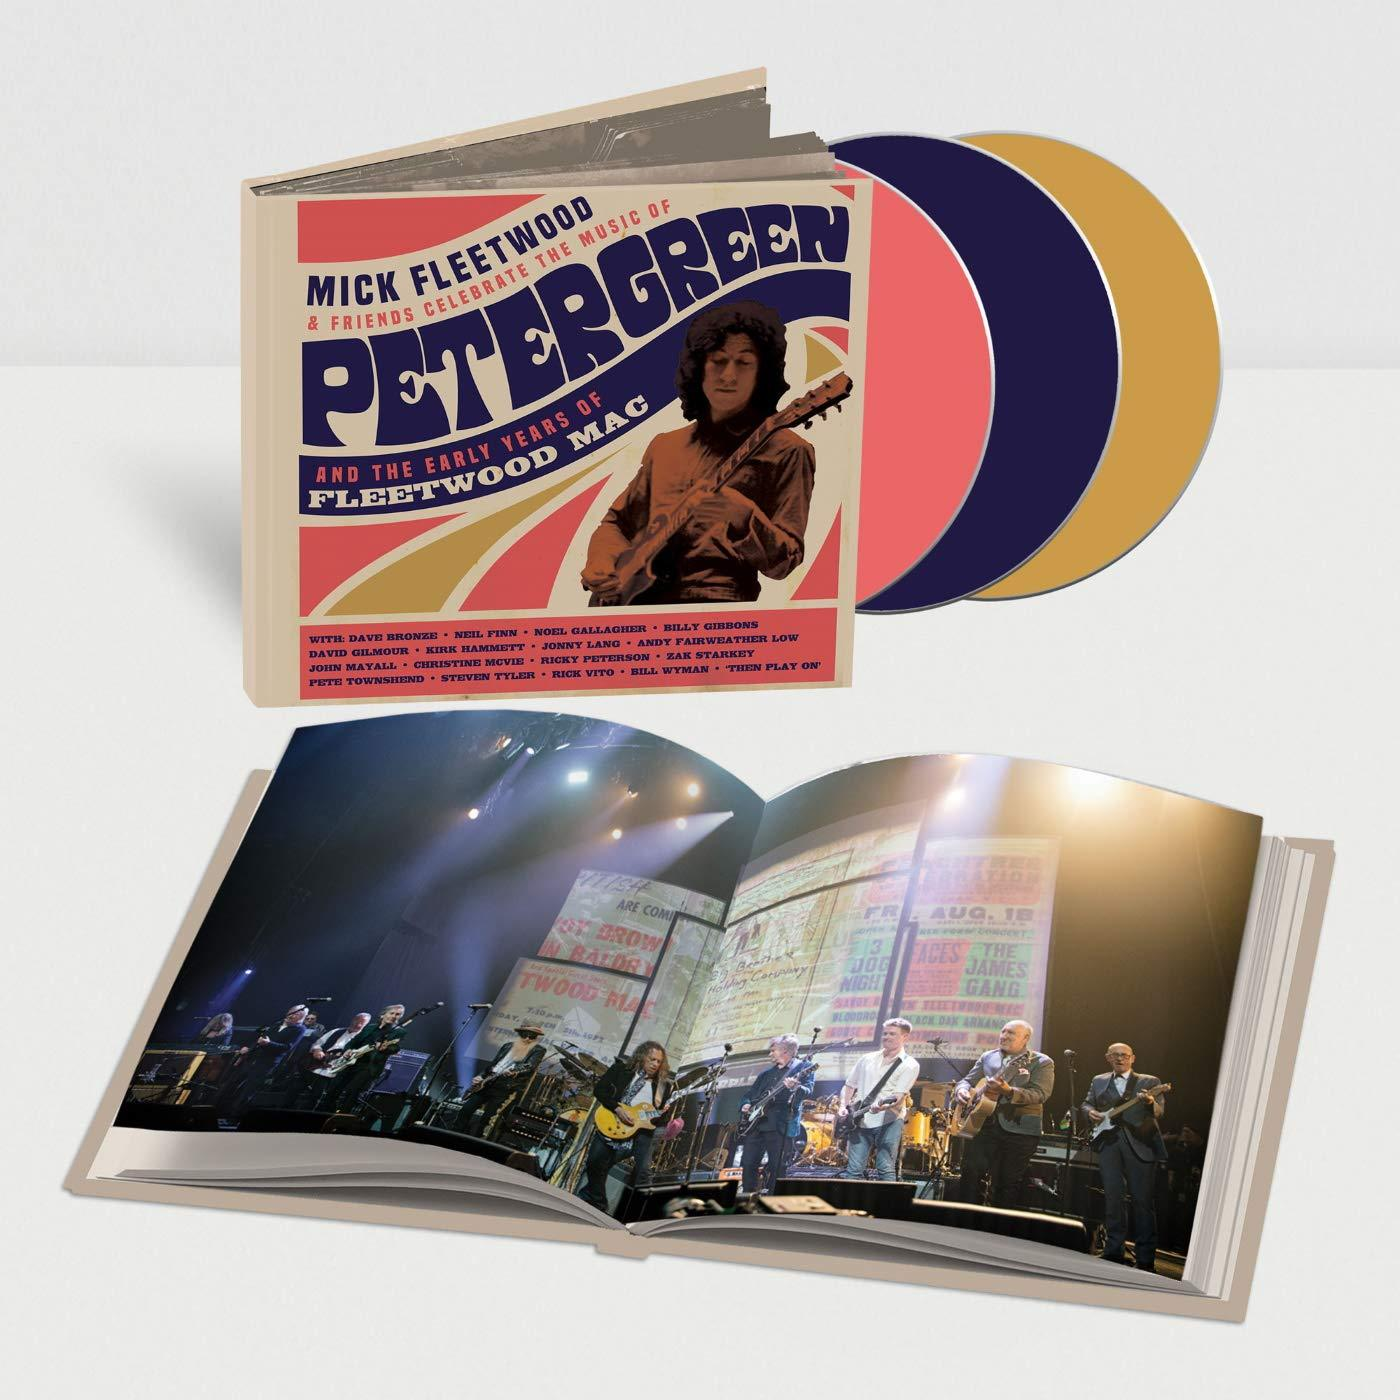 Mick Fleetwood & Friends Celebrate the Music of Peter Green And..:   - Mick Fleetwood & Friends [Deluxe CD]